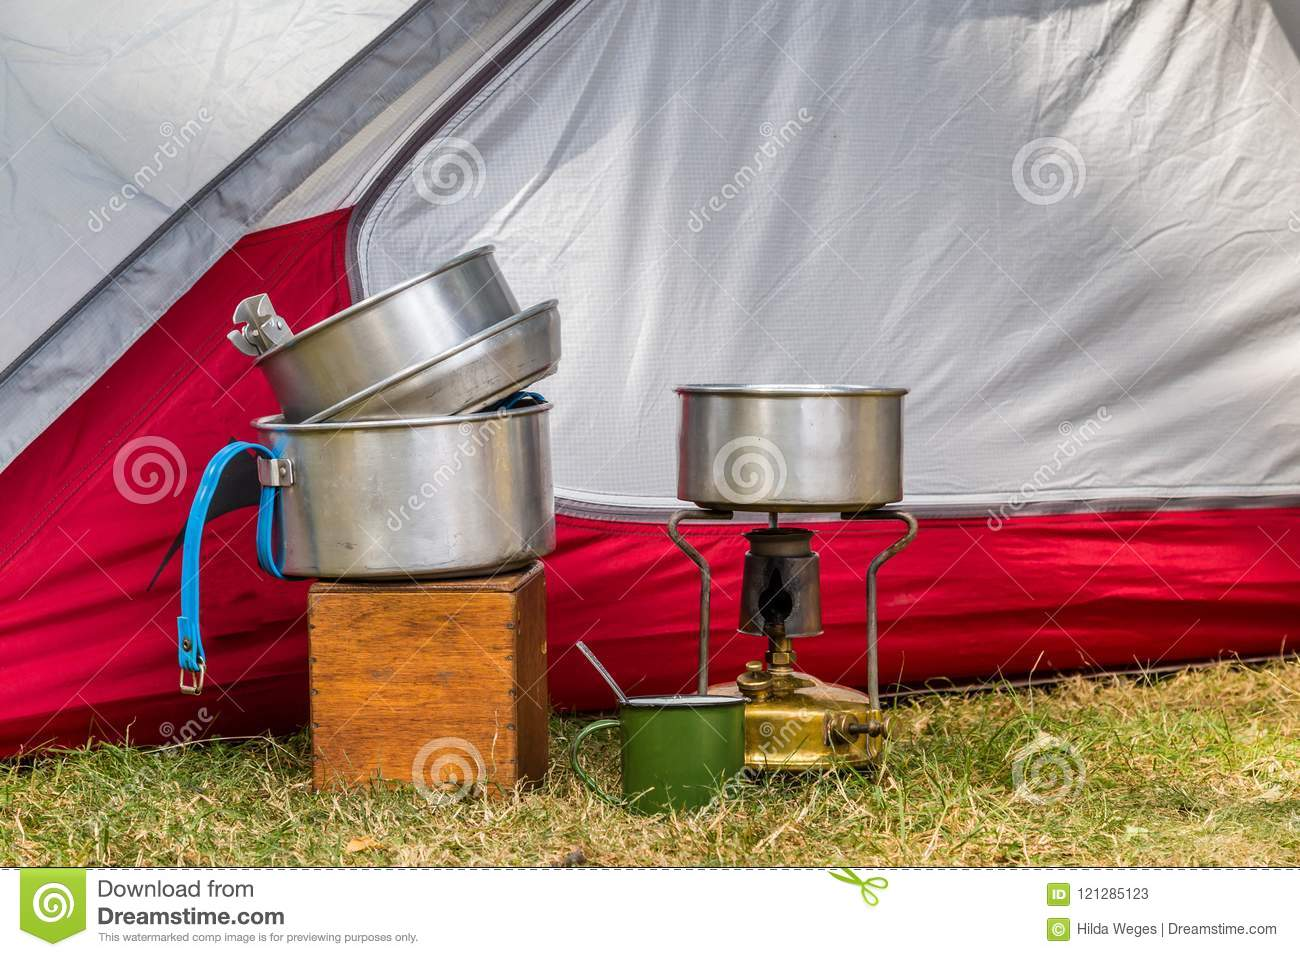 Cooking equipment on a campsite